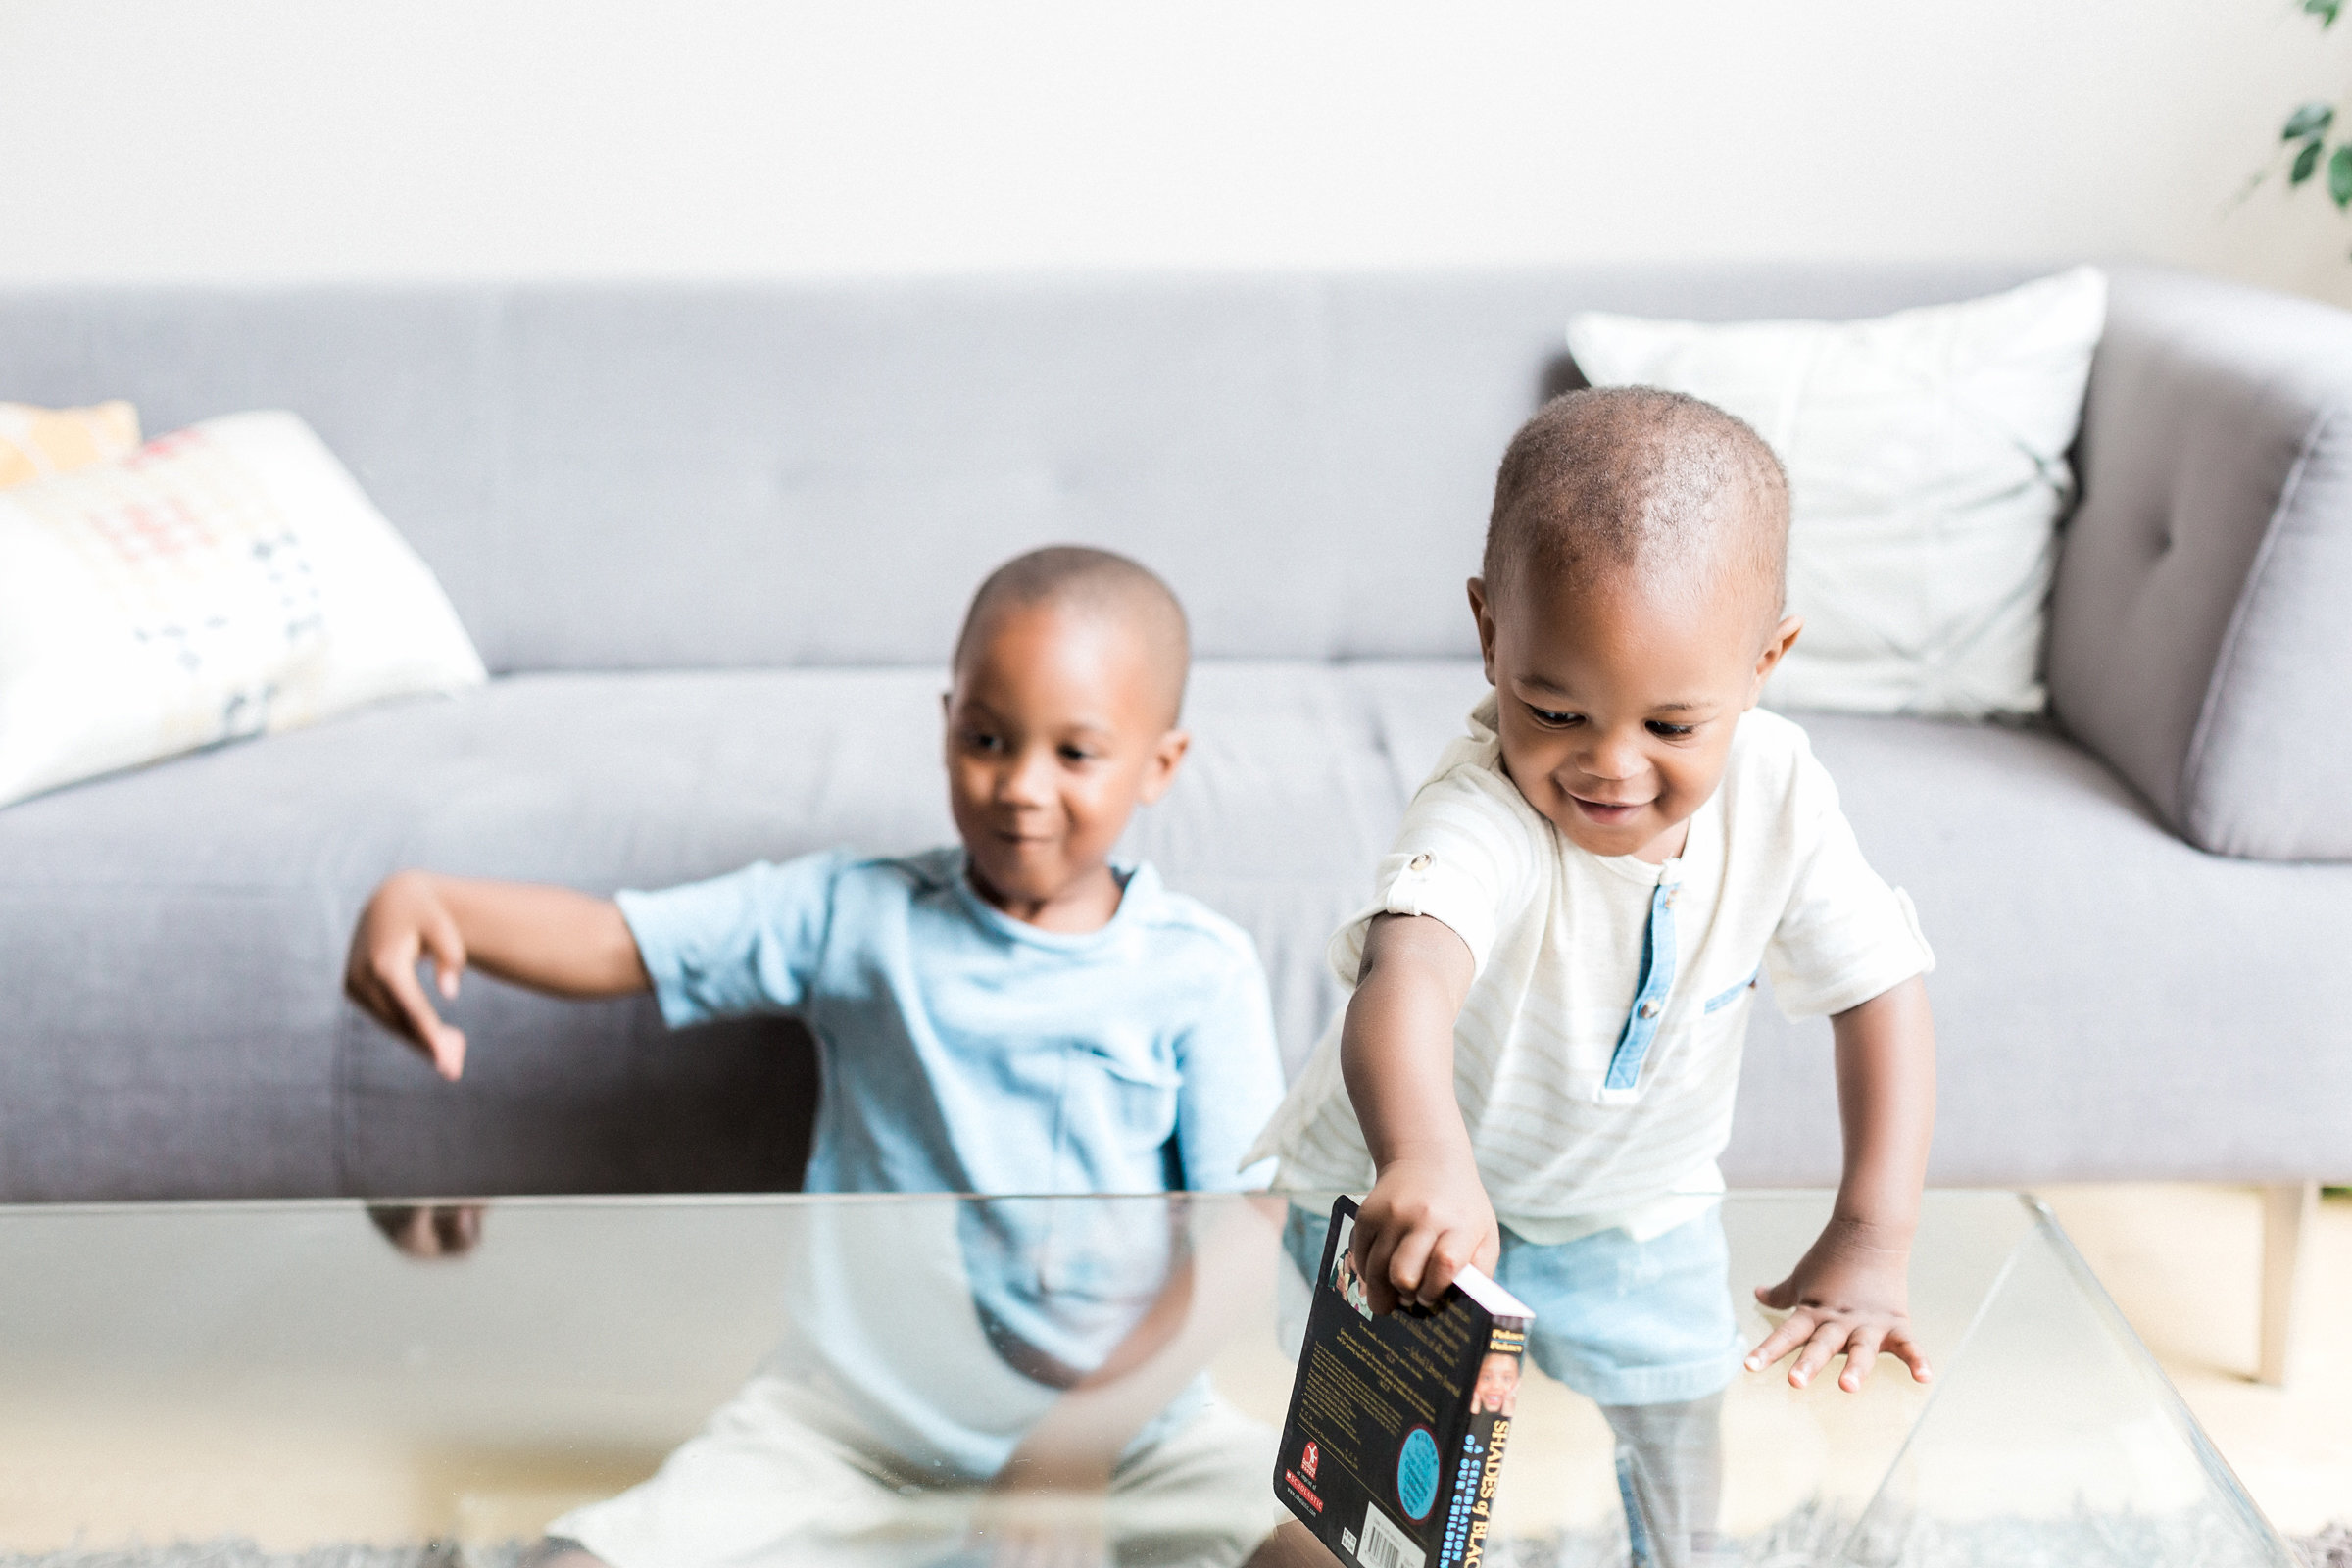 big brother plays with his baby brother in a modern living room